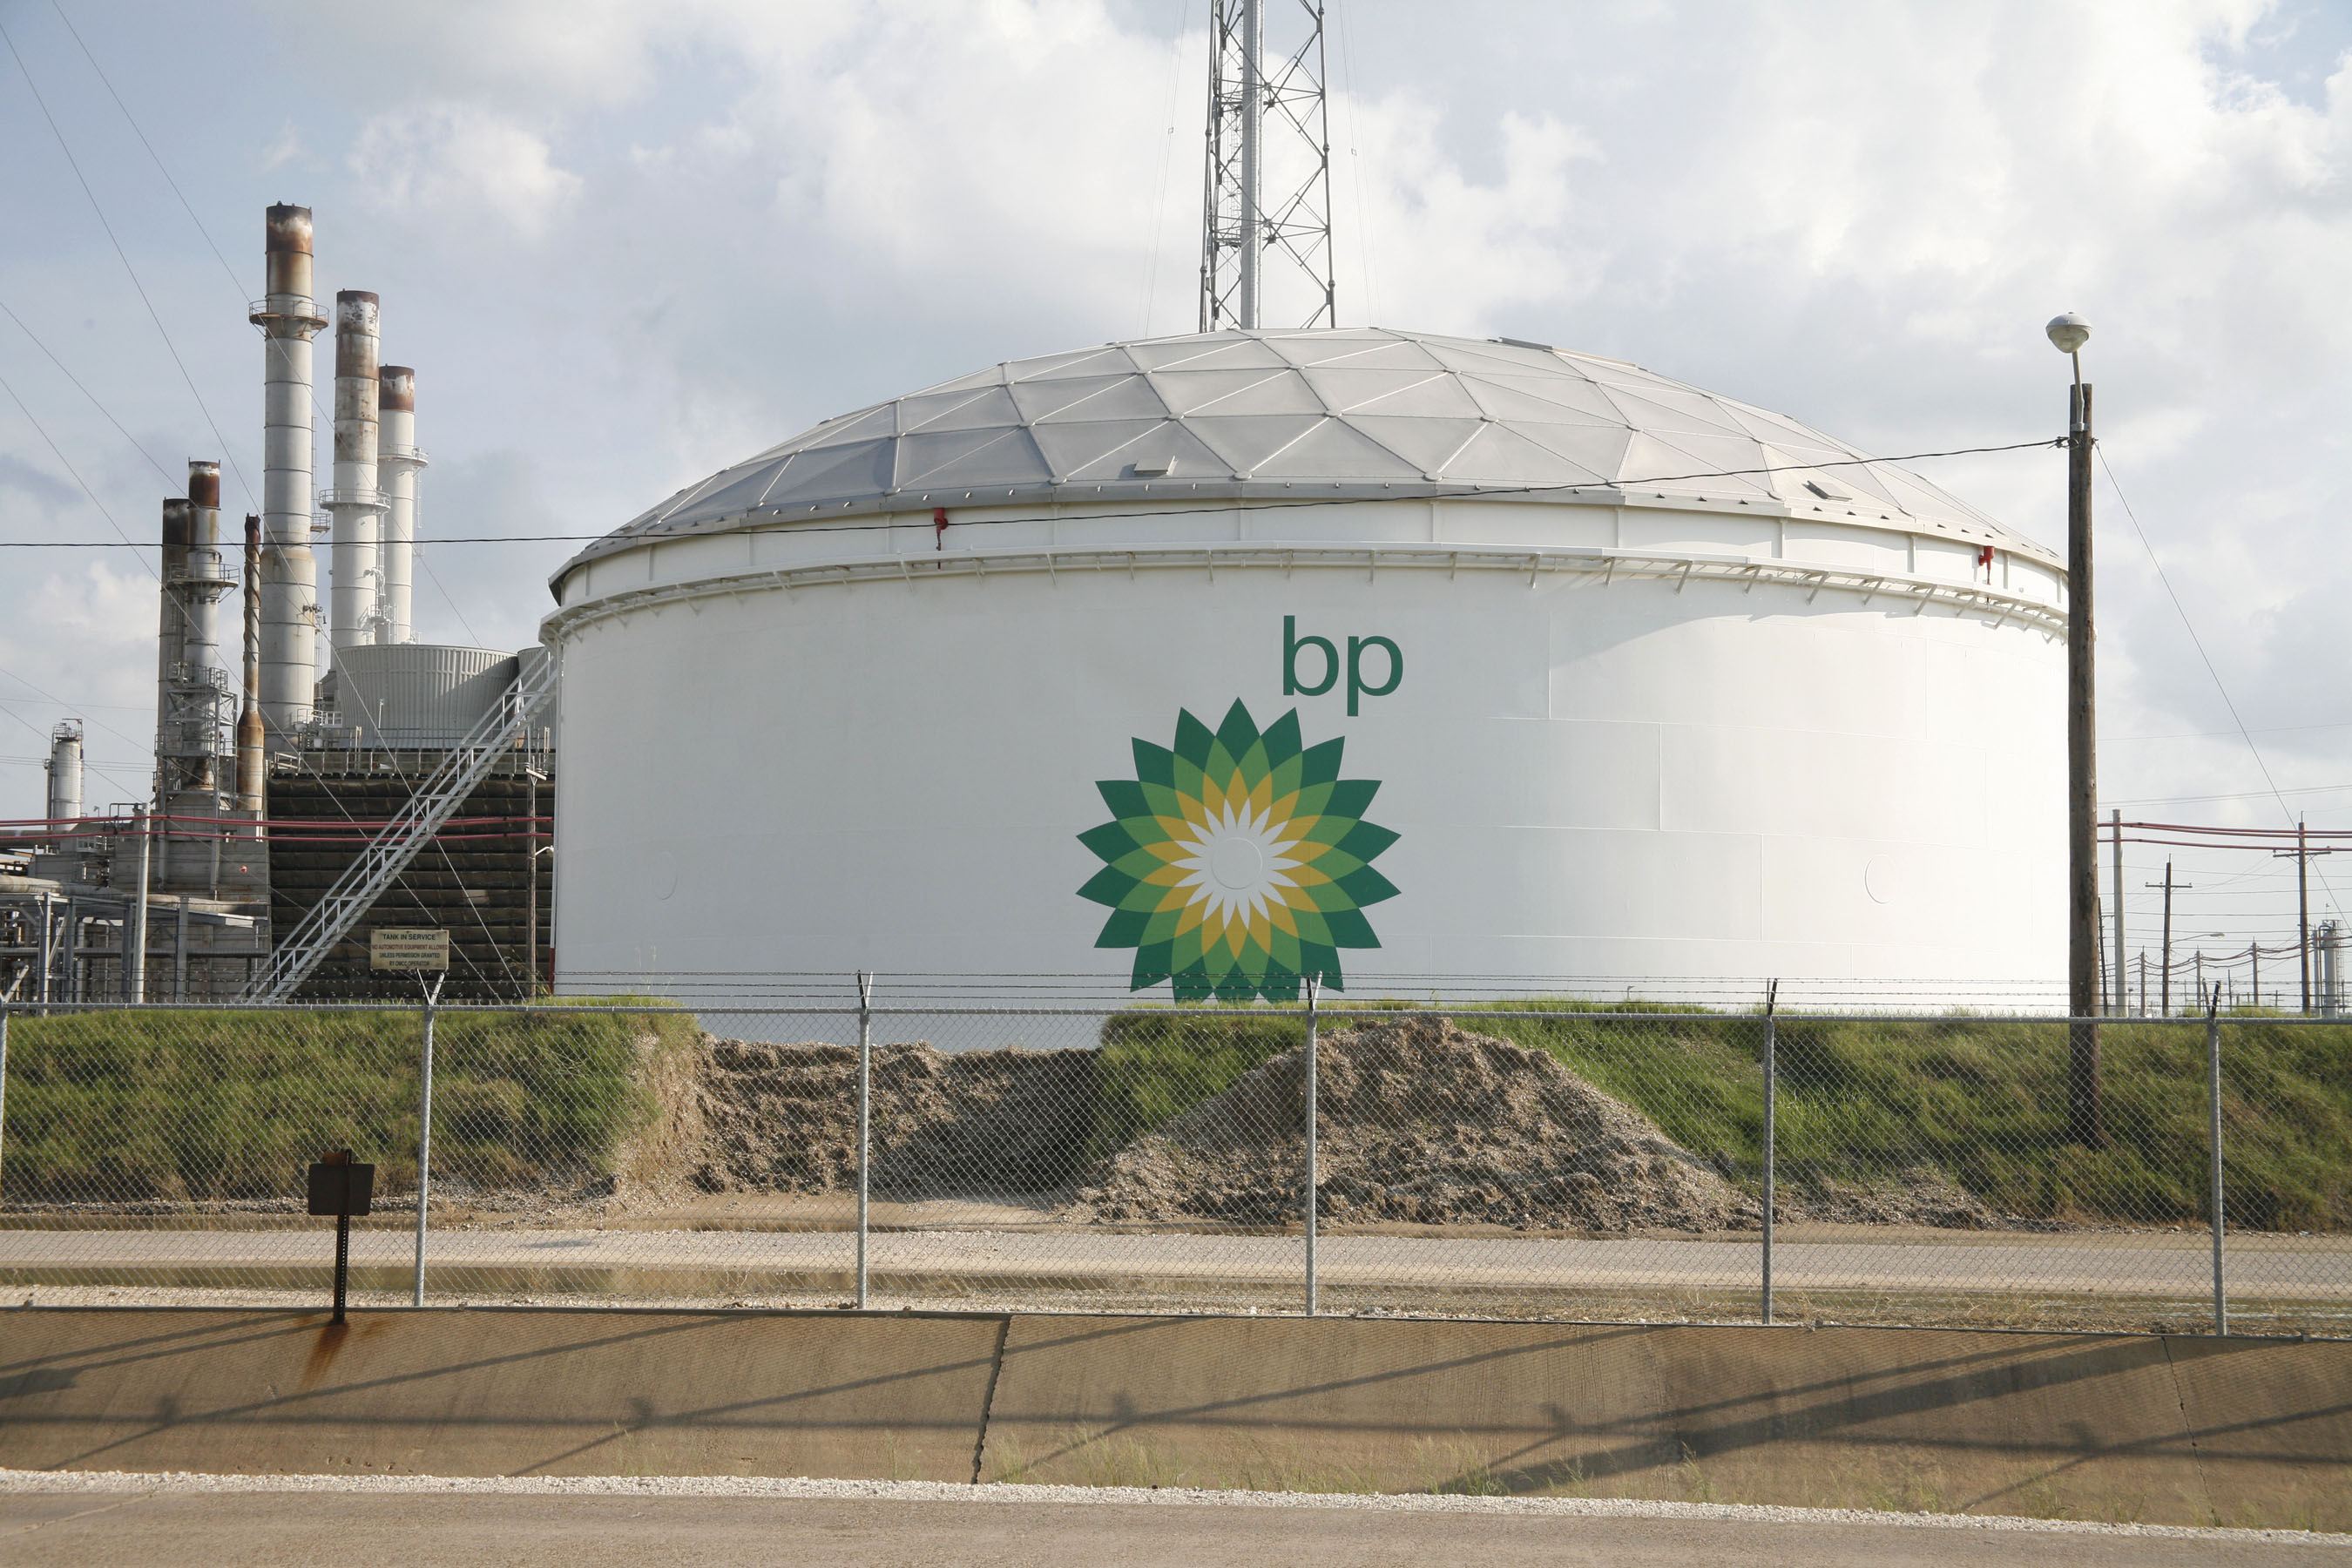 BP's net loss in the first half of the year amounted to $21.2 billion